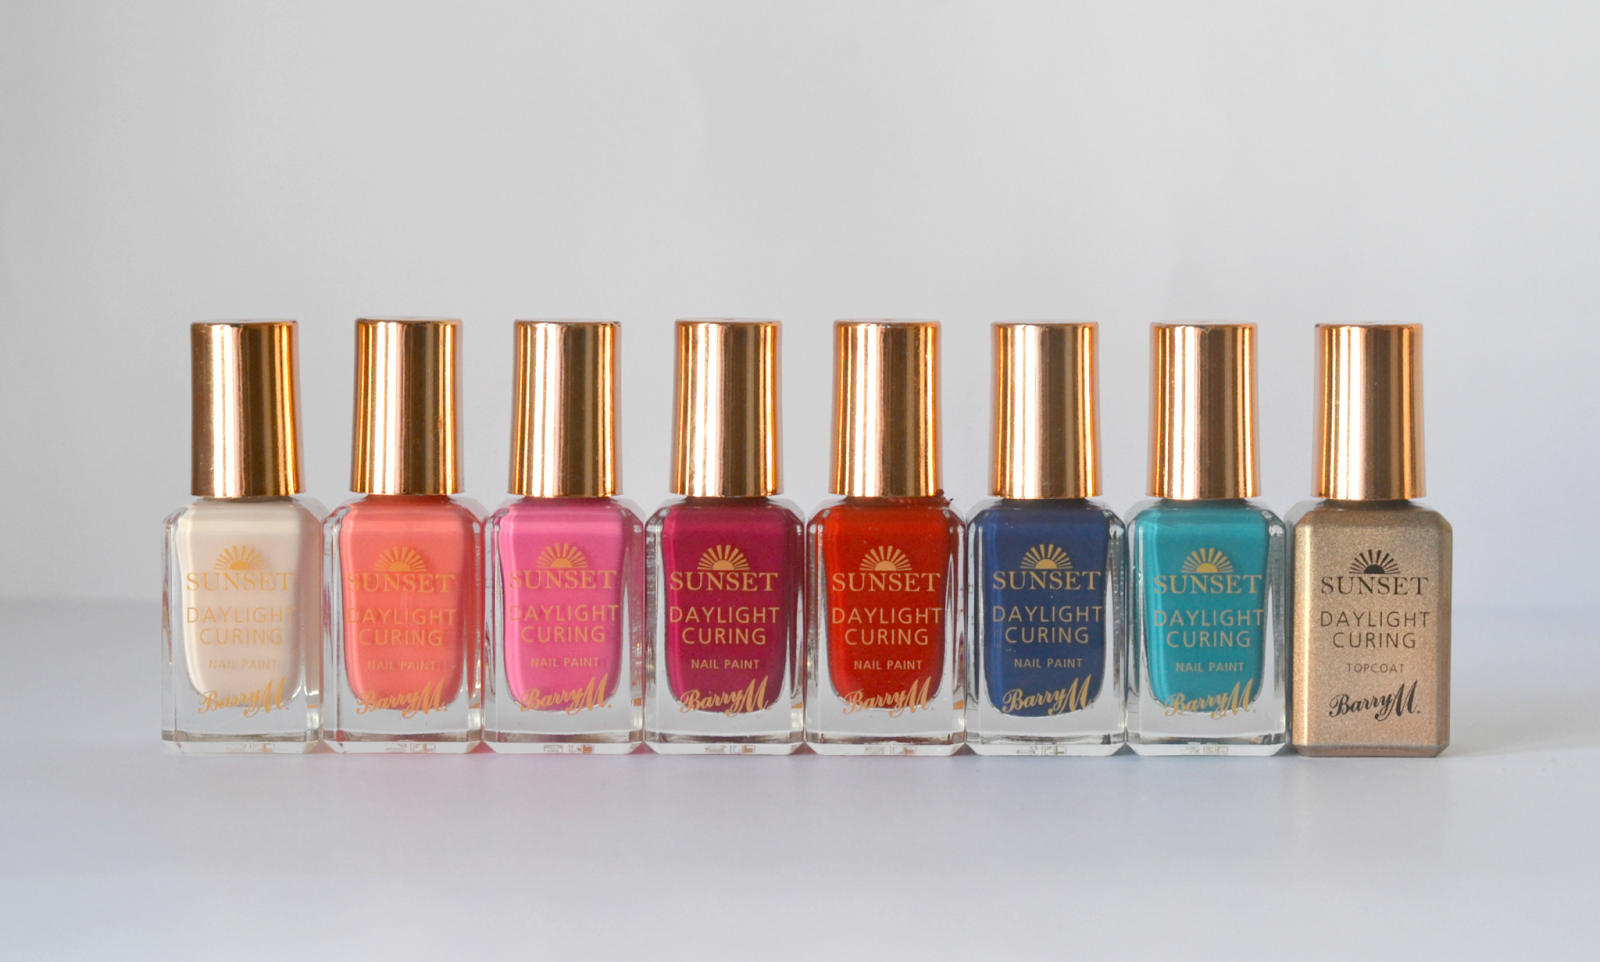 The Barry m Sunset Daylight